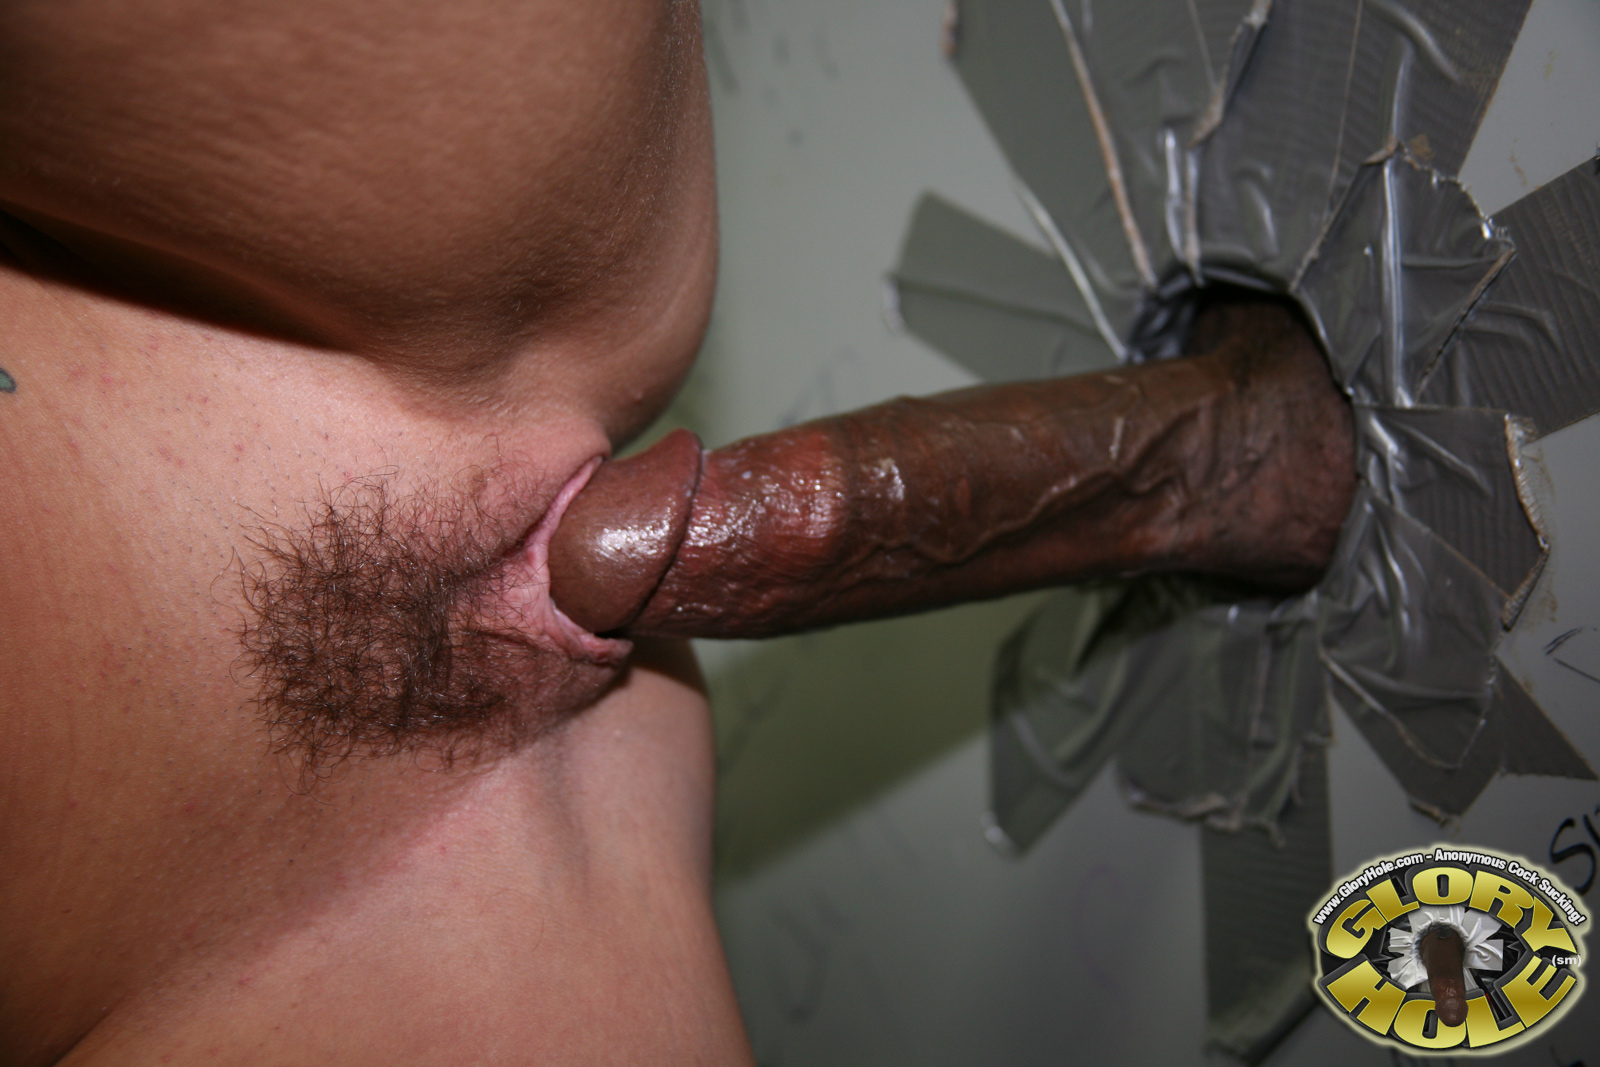 World glory holes